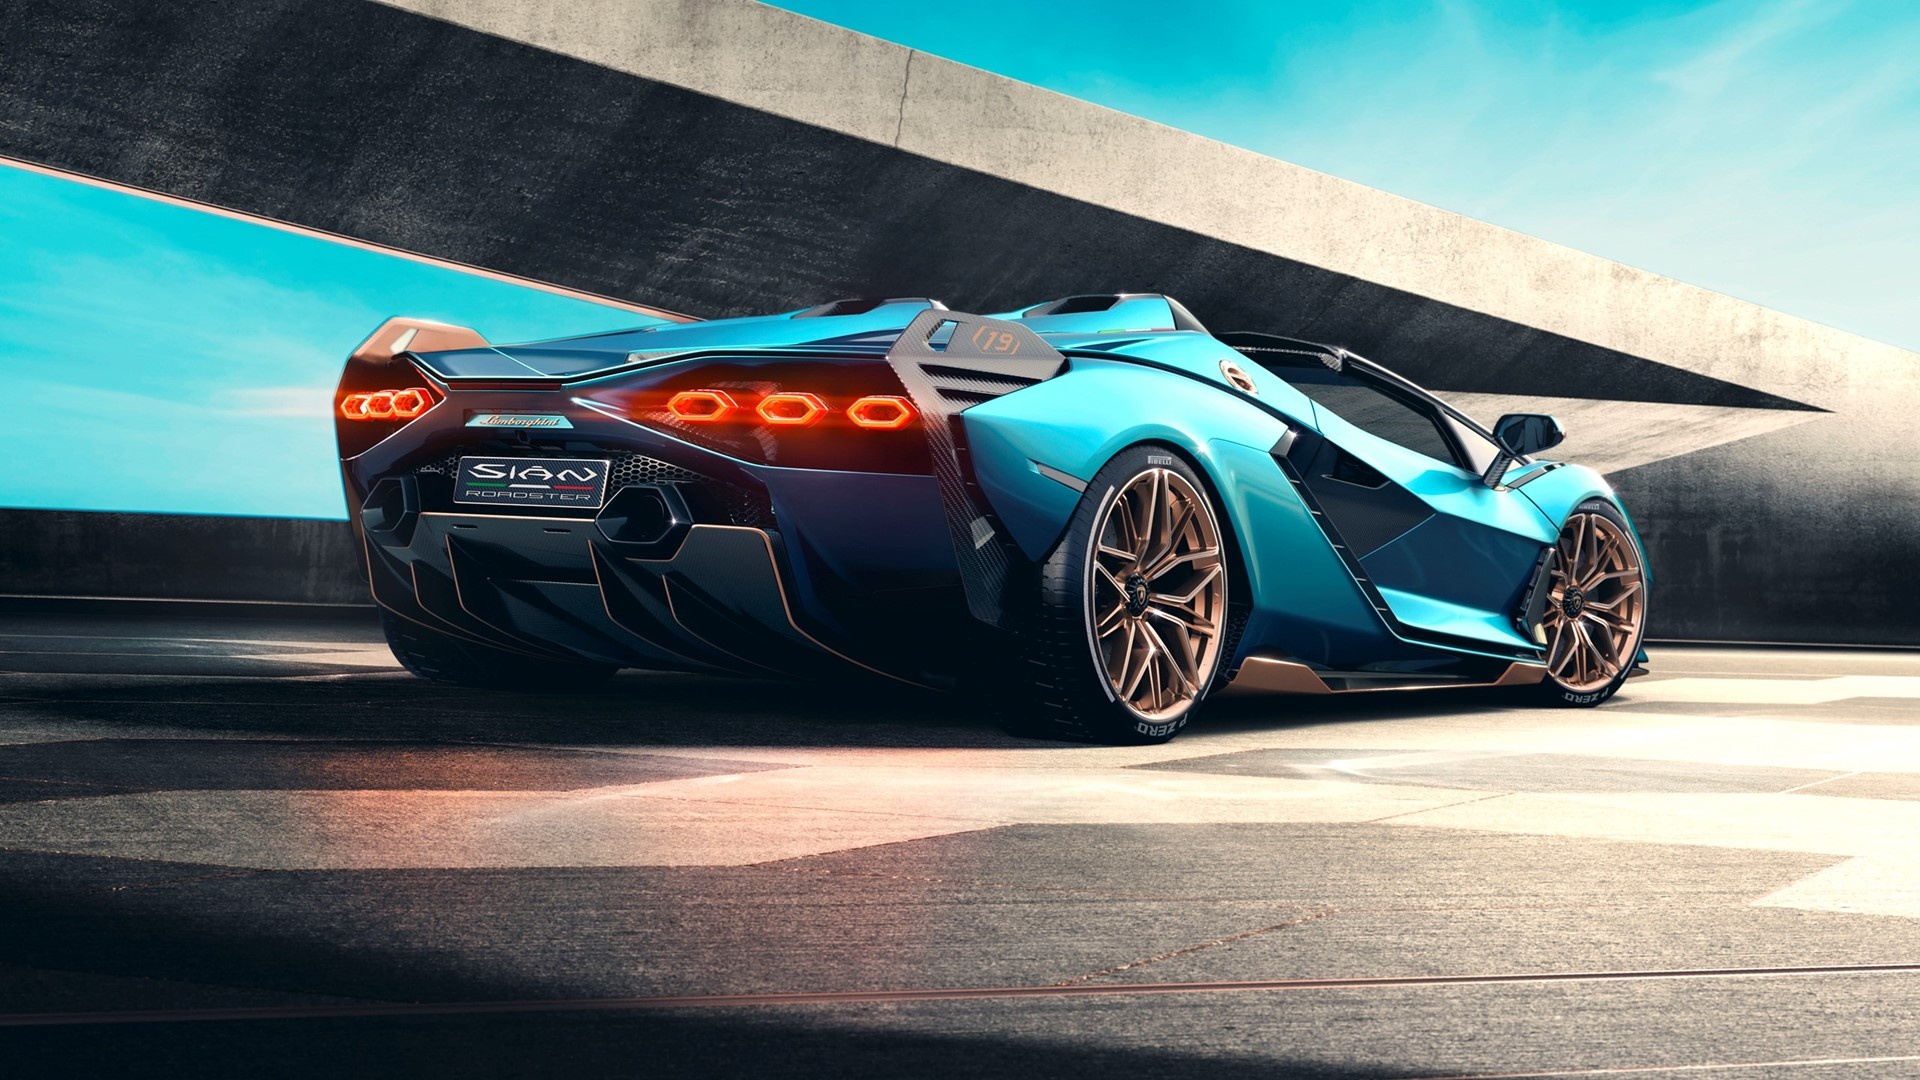 The Lamborghini Sián Roadster: Experience future technology under open skies - Image 1